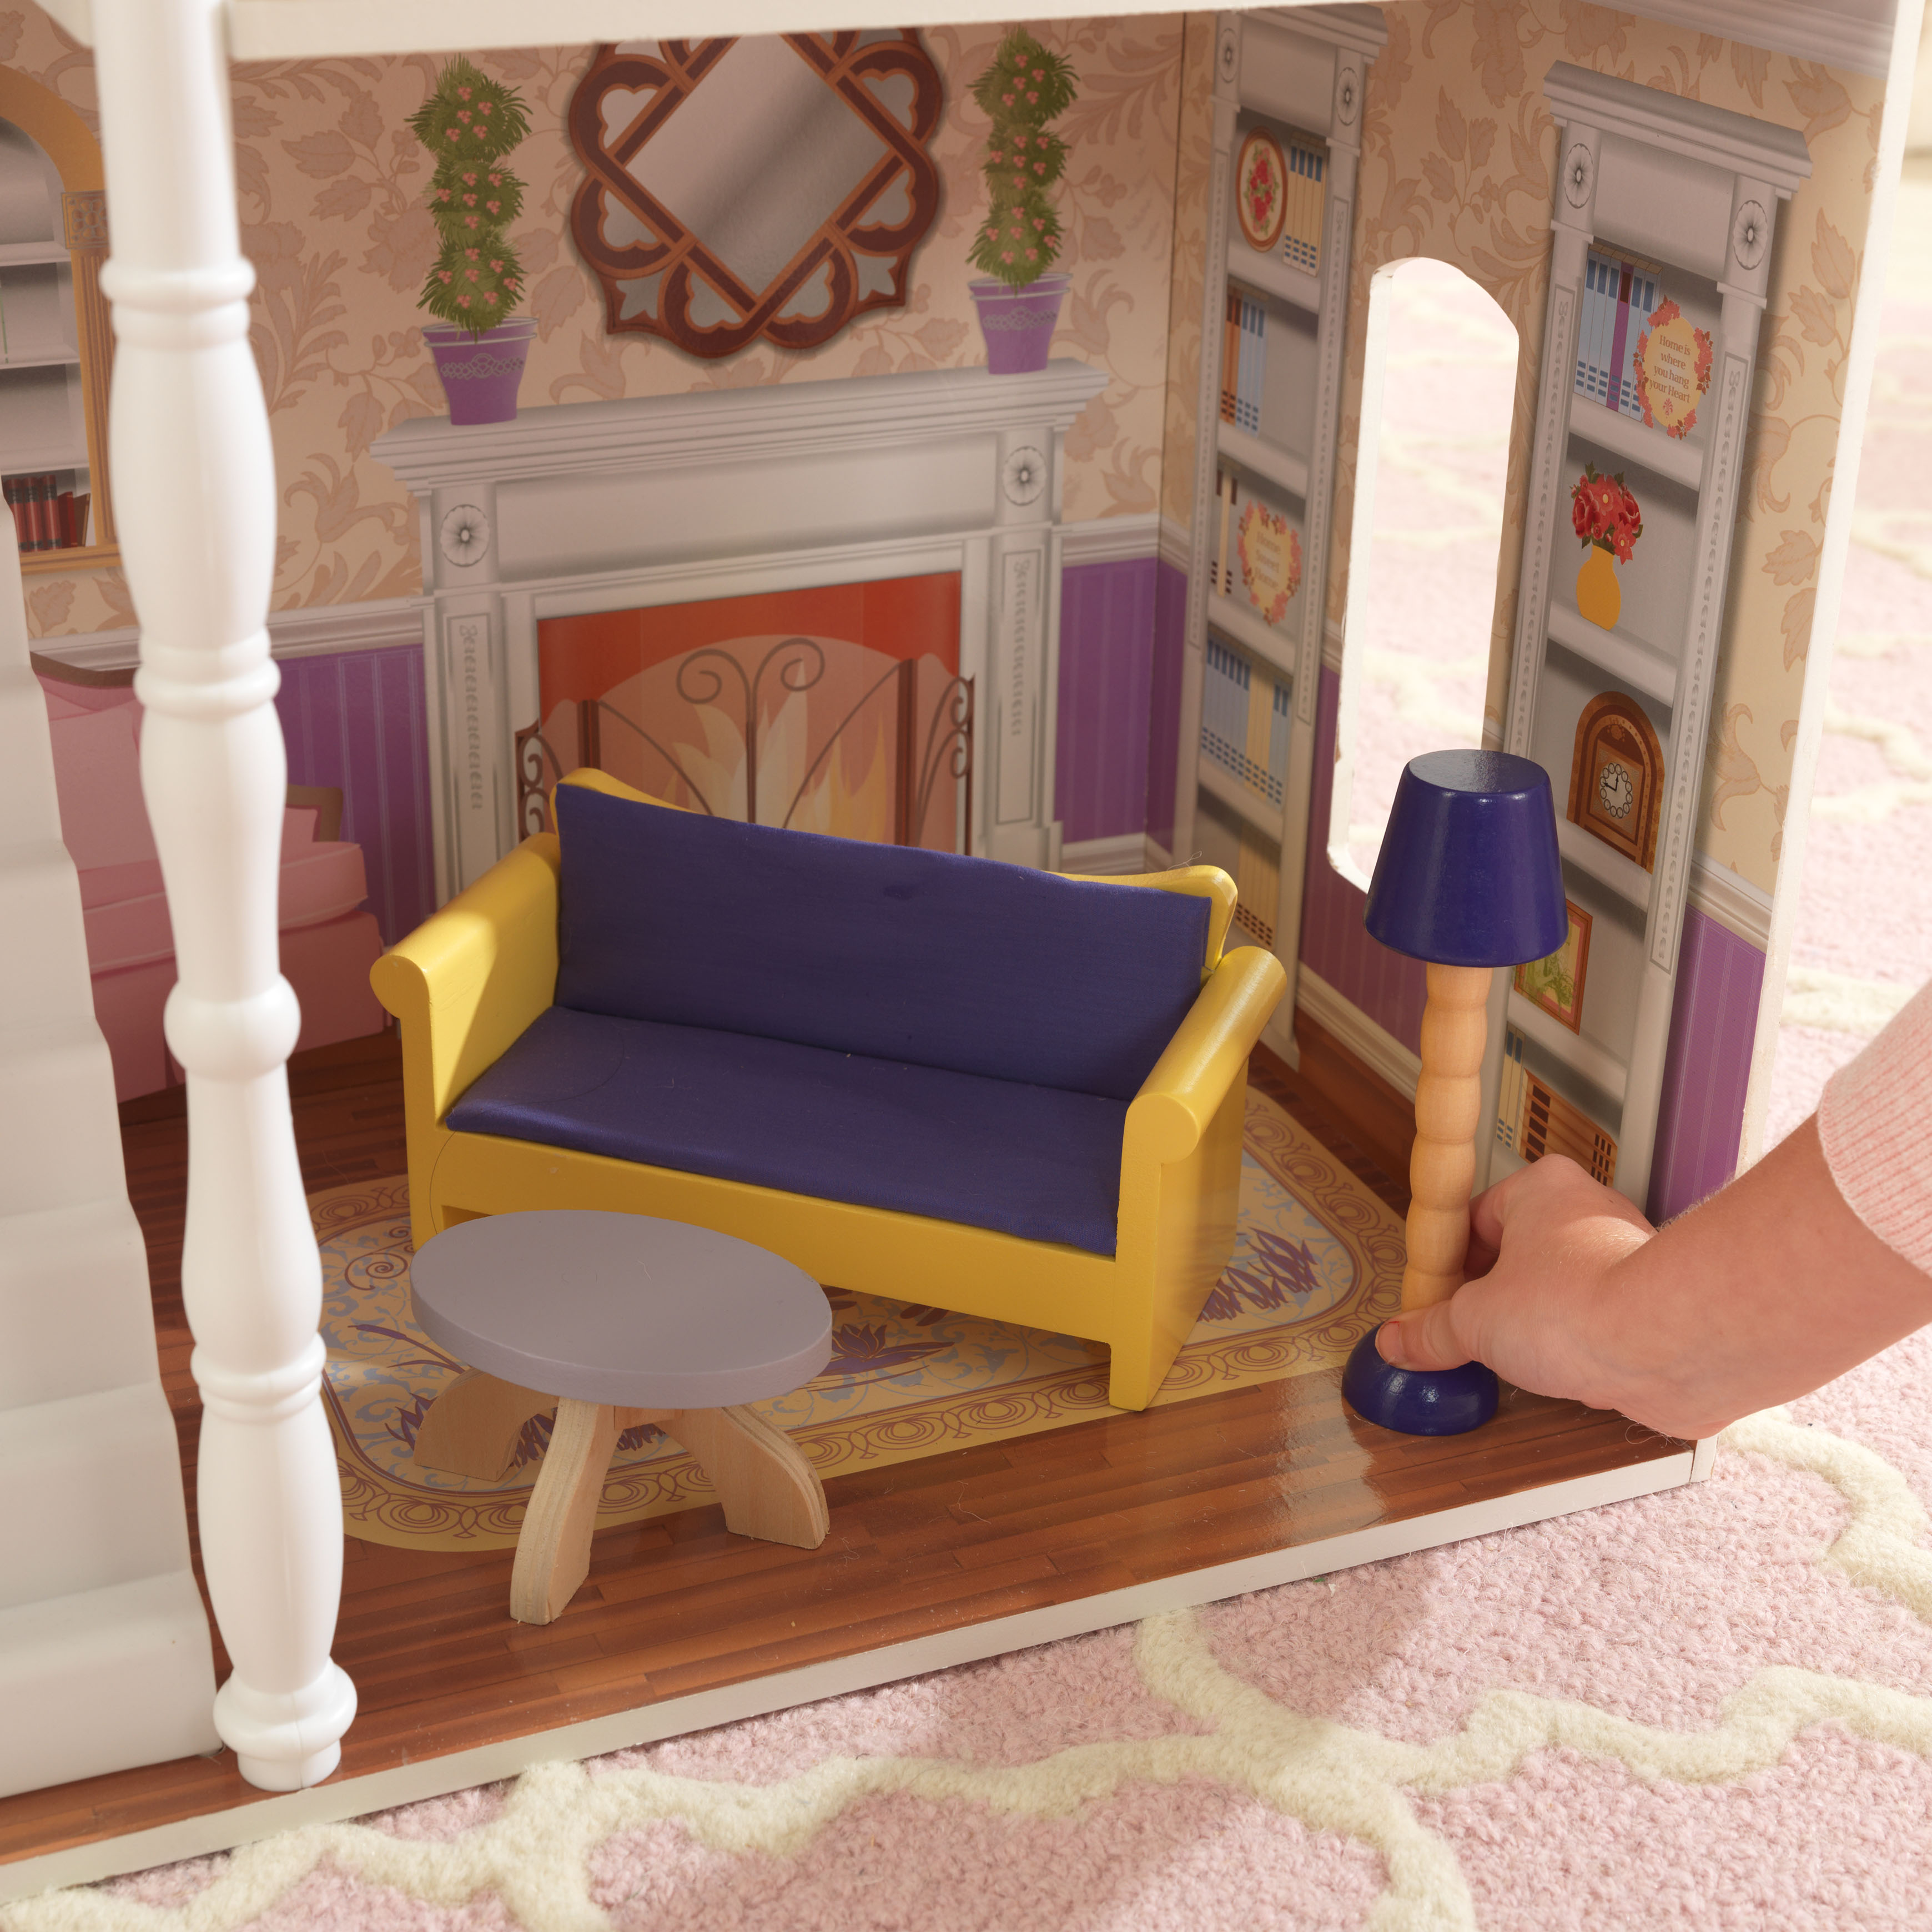 KidKraft Savannah Dollhouse with 13 accessories included Walmart